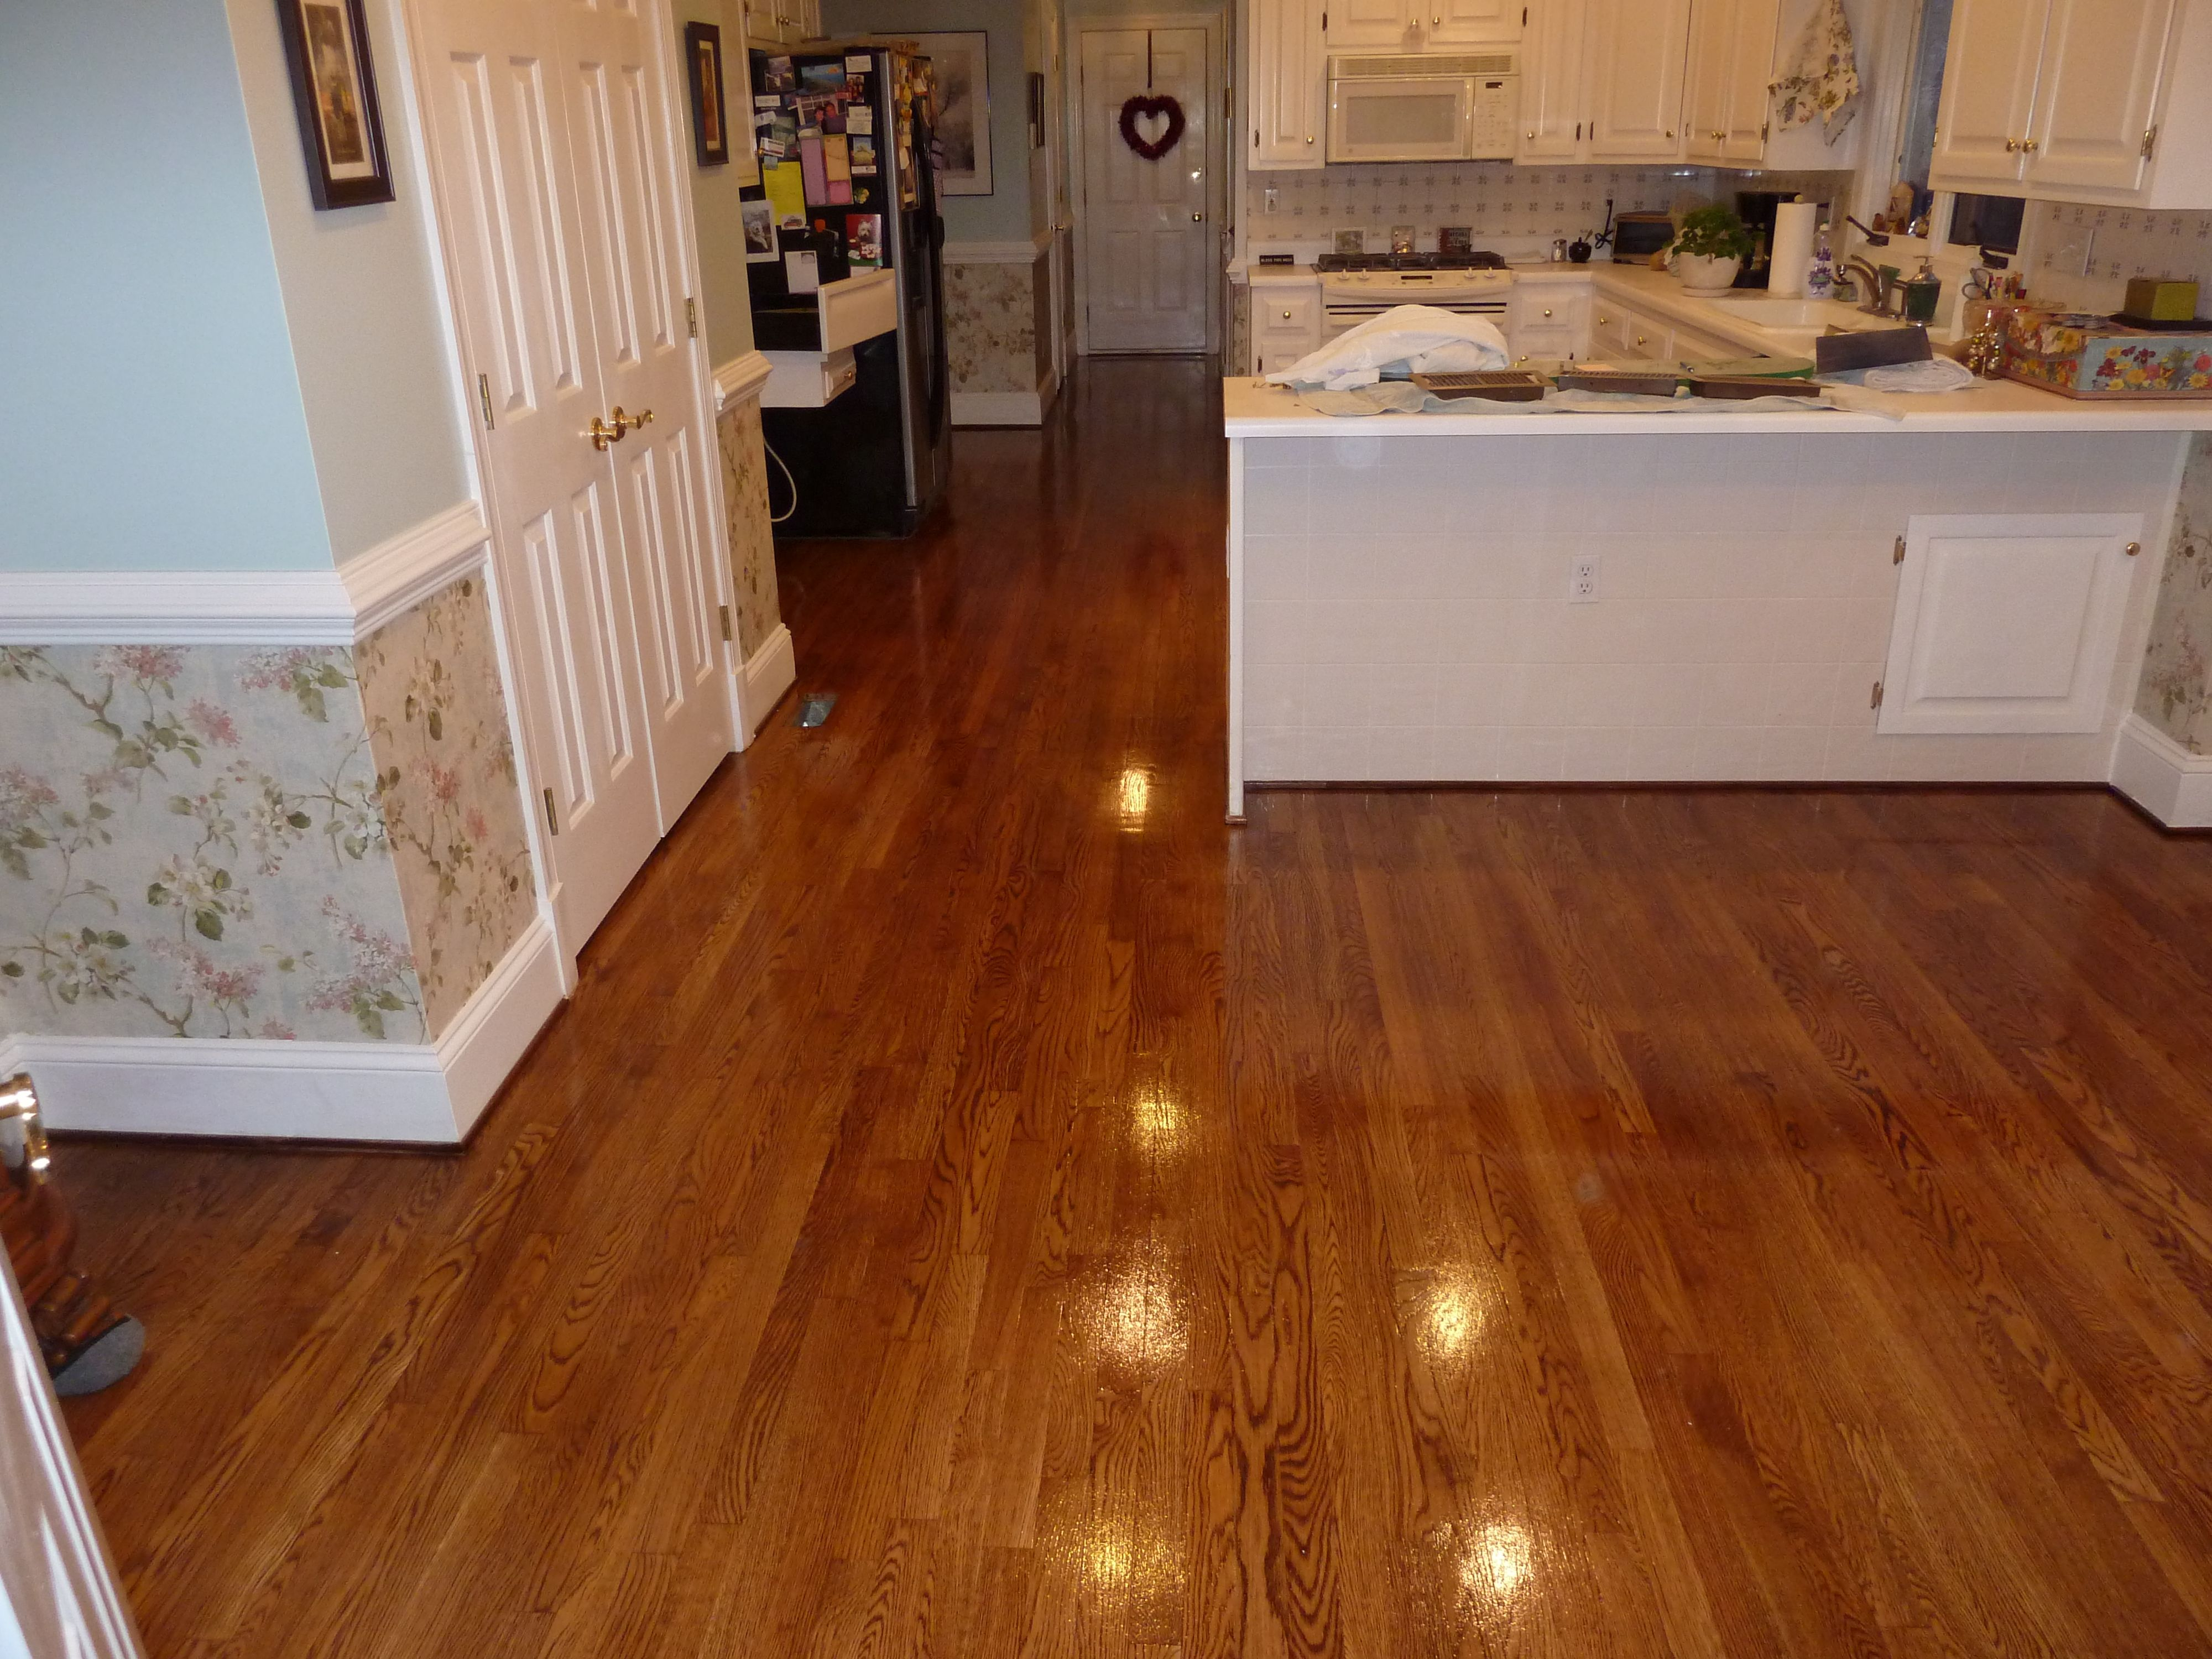 Solid Wood Floor In Kitchen The 49 Best Images About Hardwood Floors On Pinterest Stains